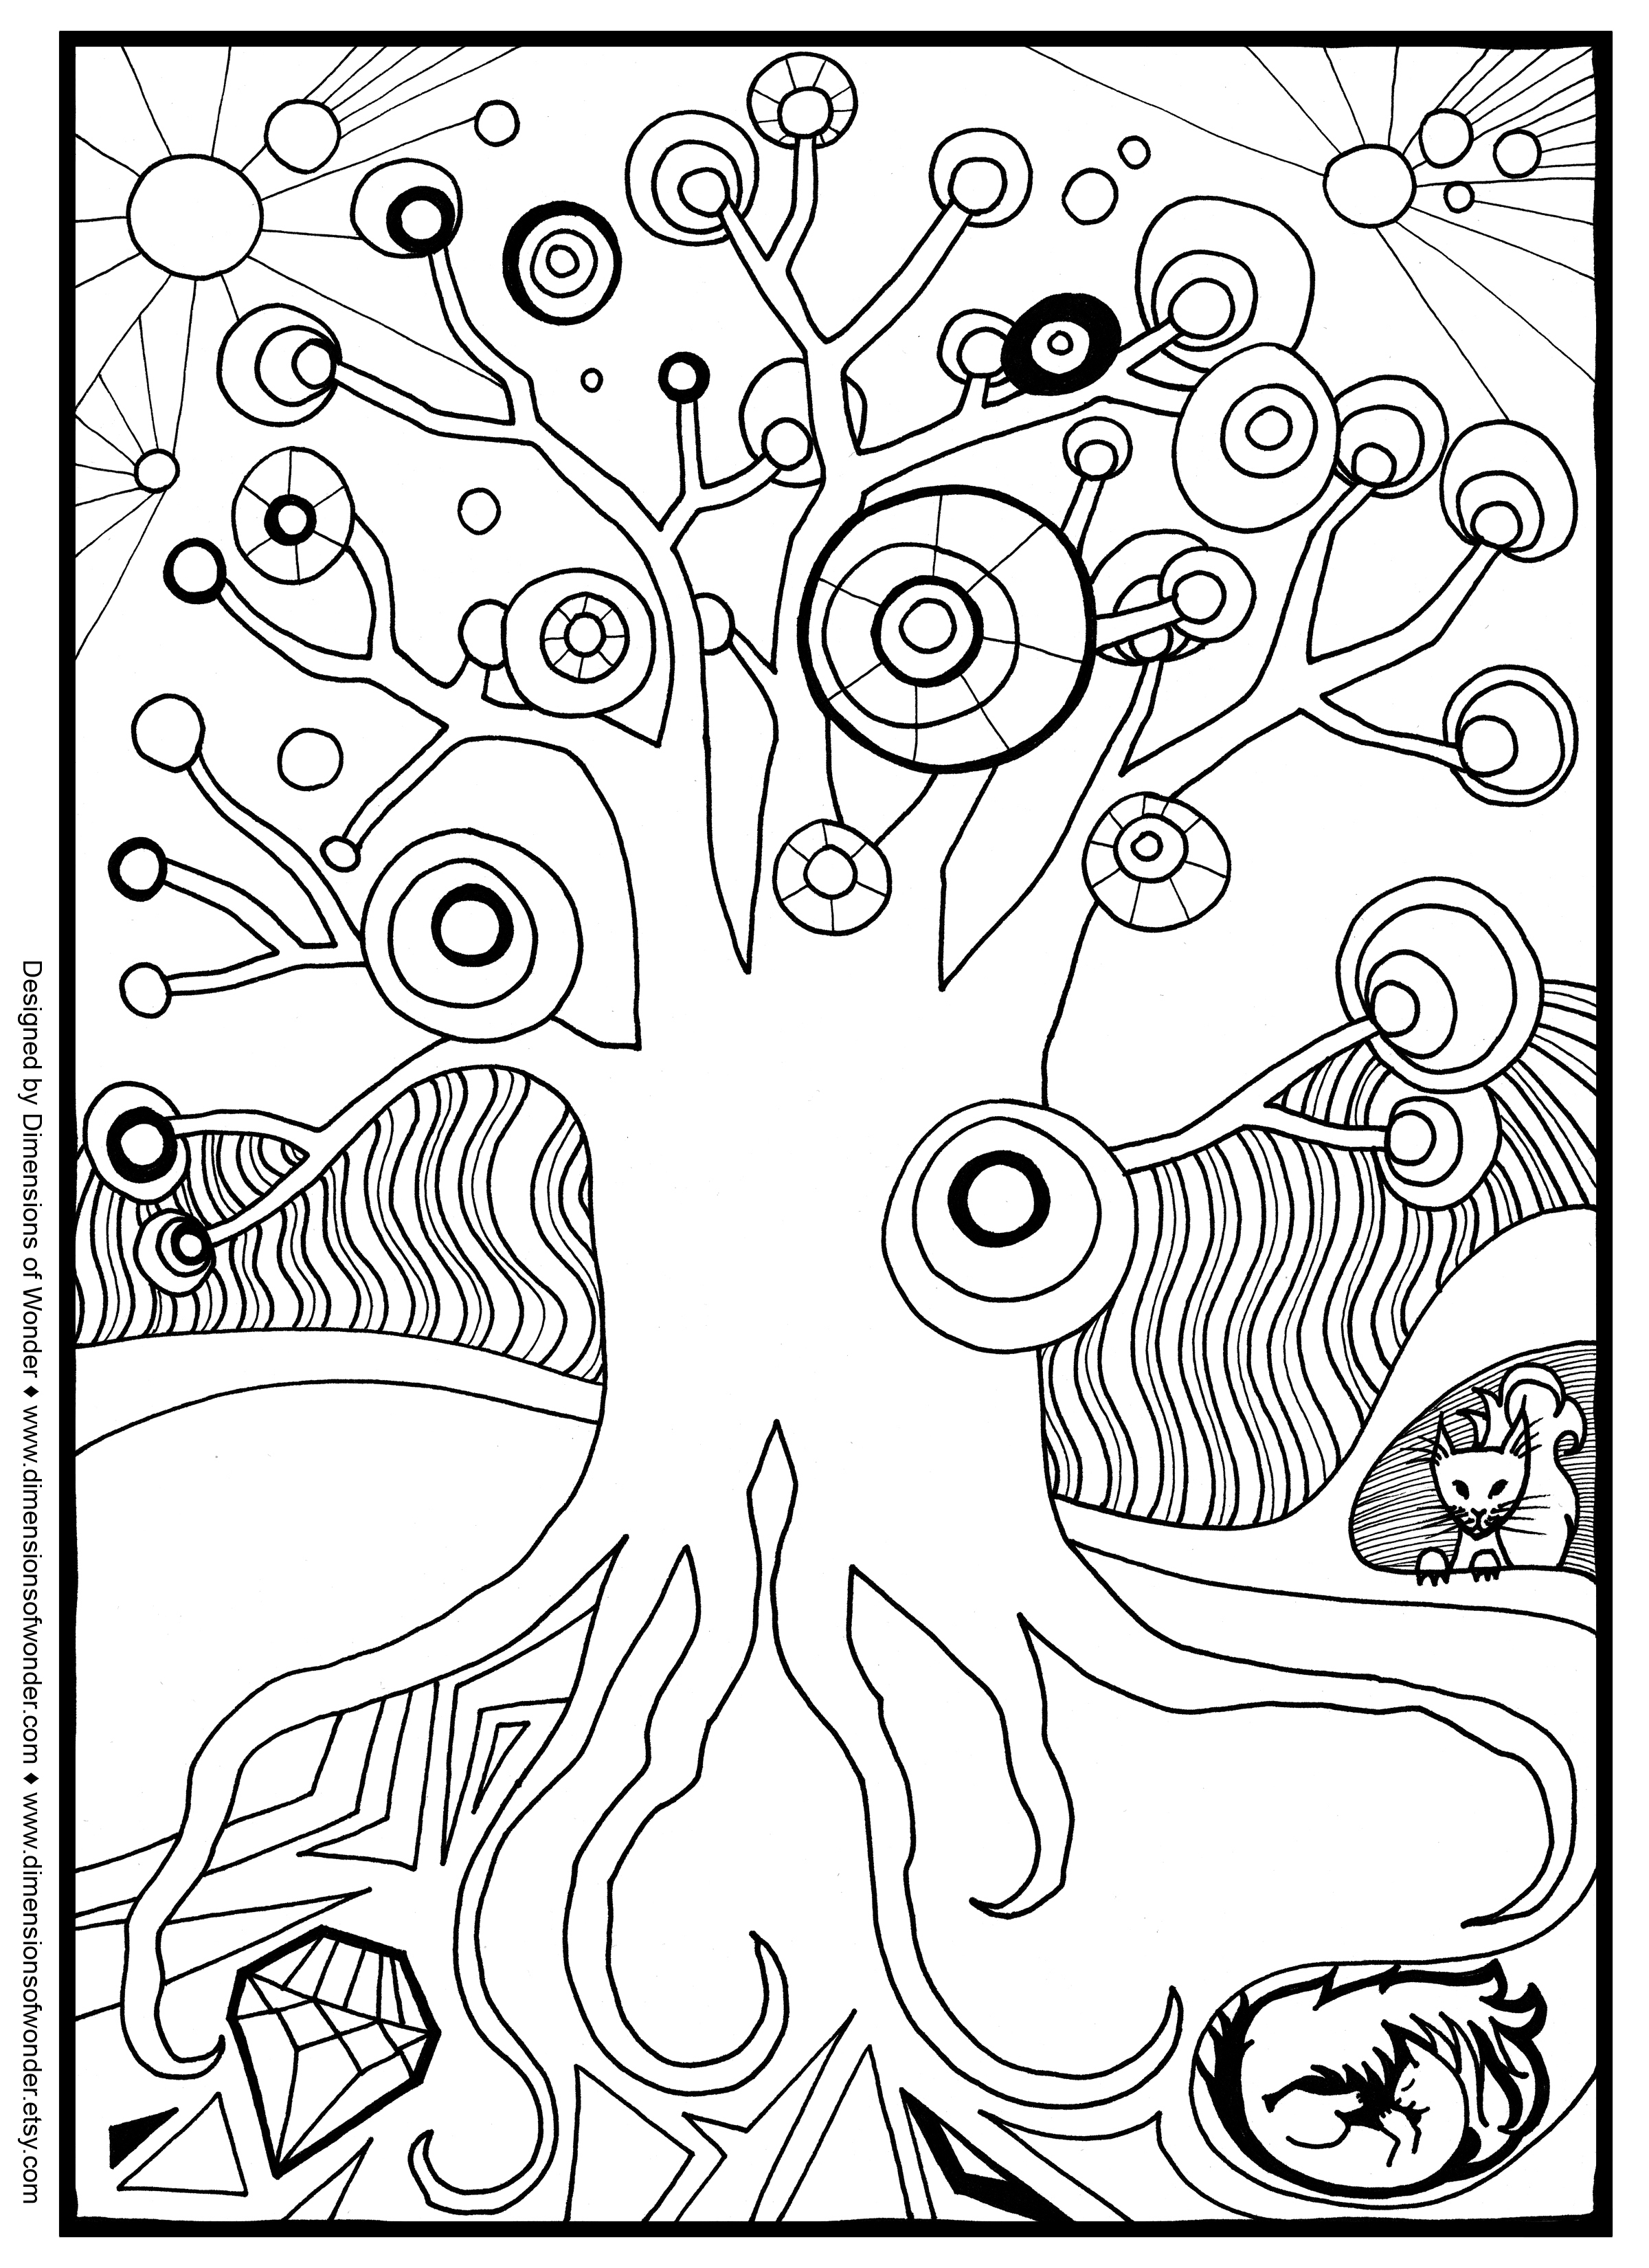 2400x3300 Coloring Pages For Middle Schoolers Coloring Sheets For Middle